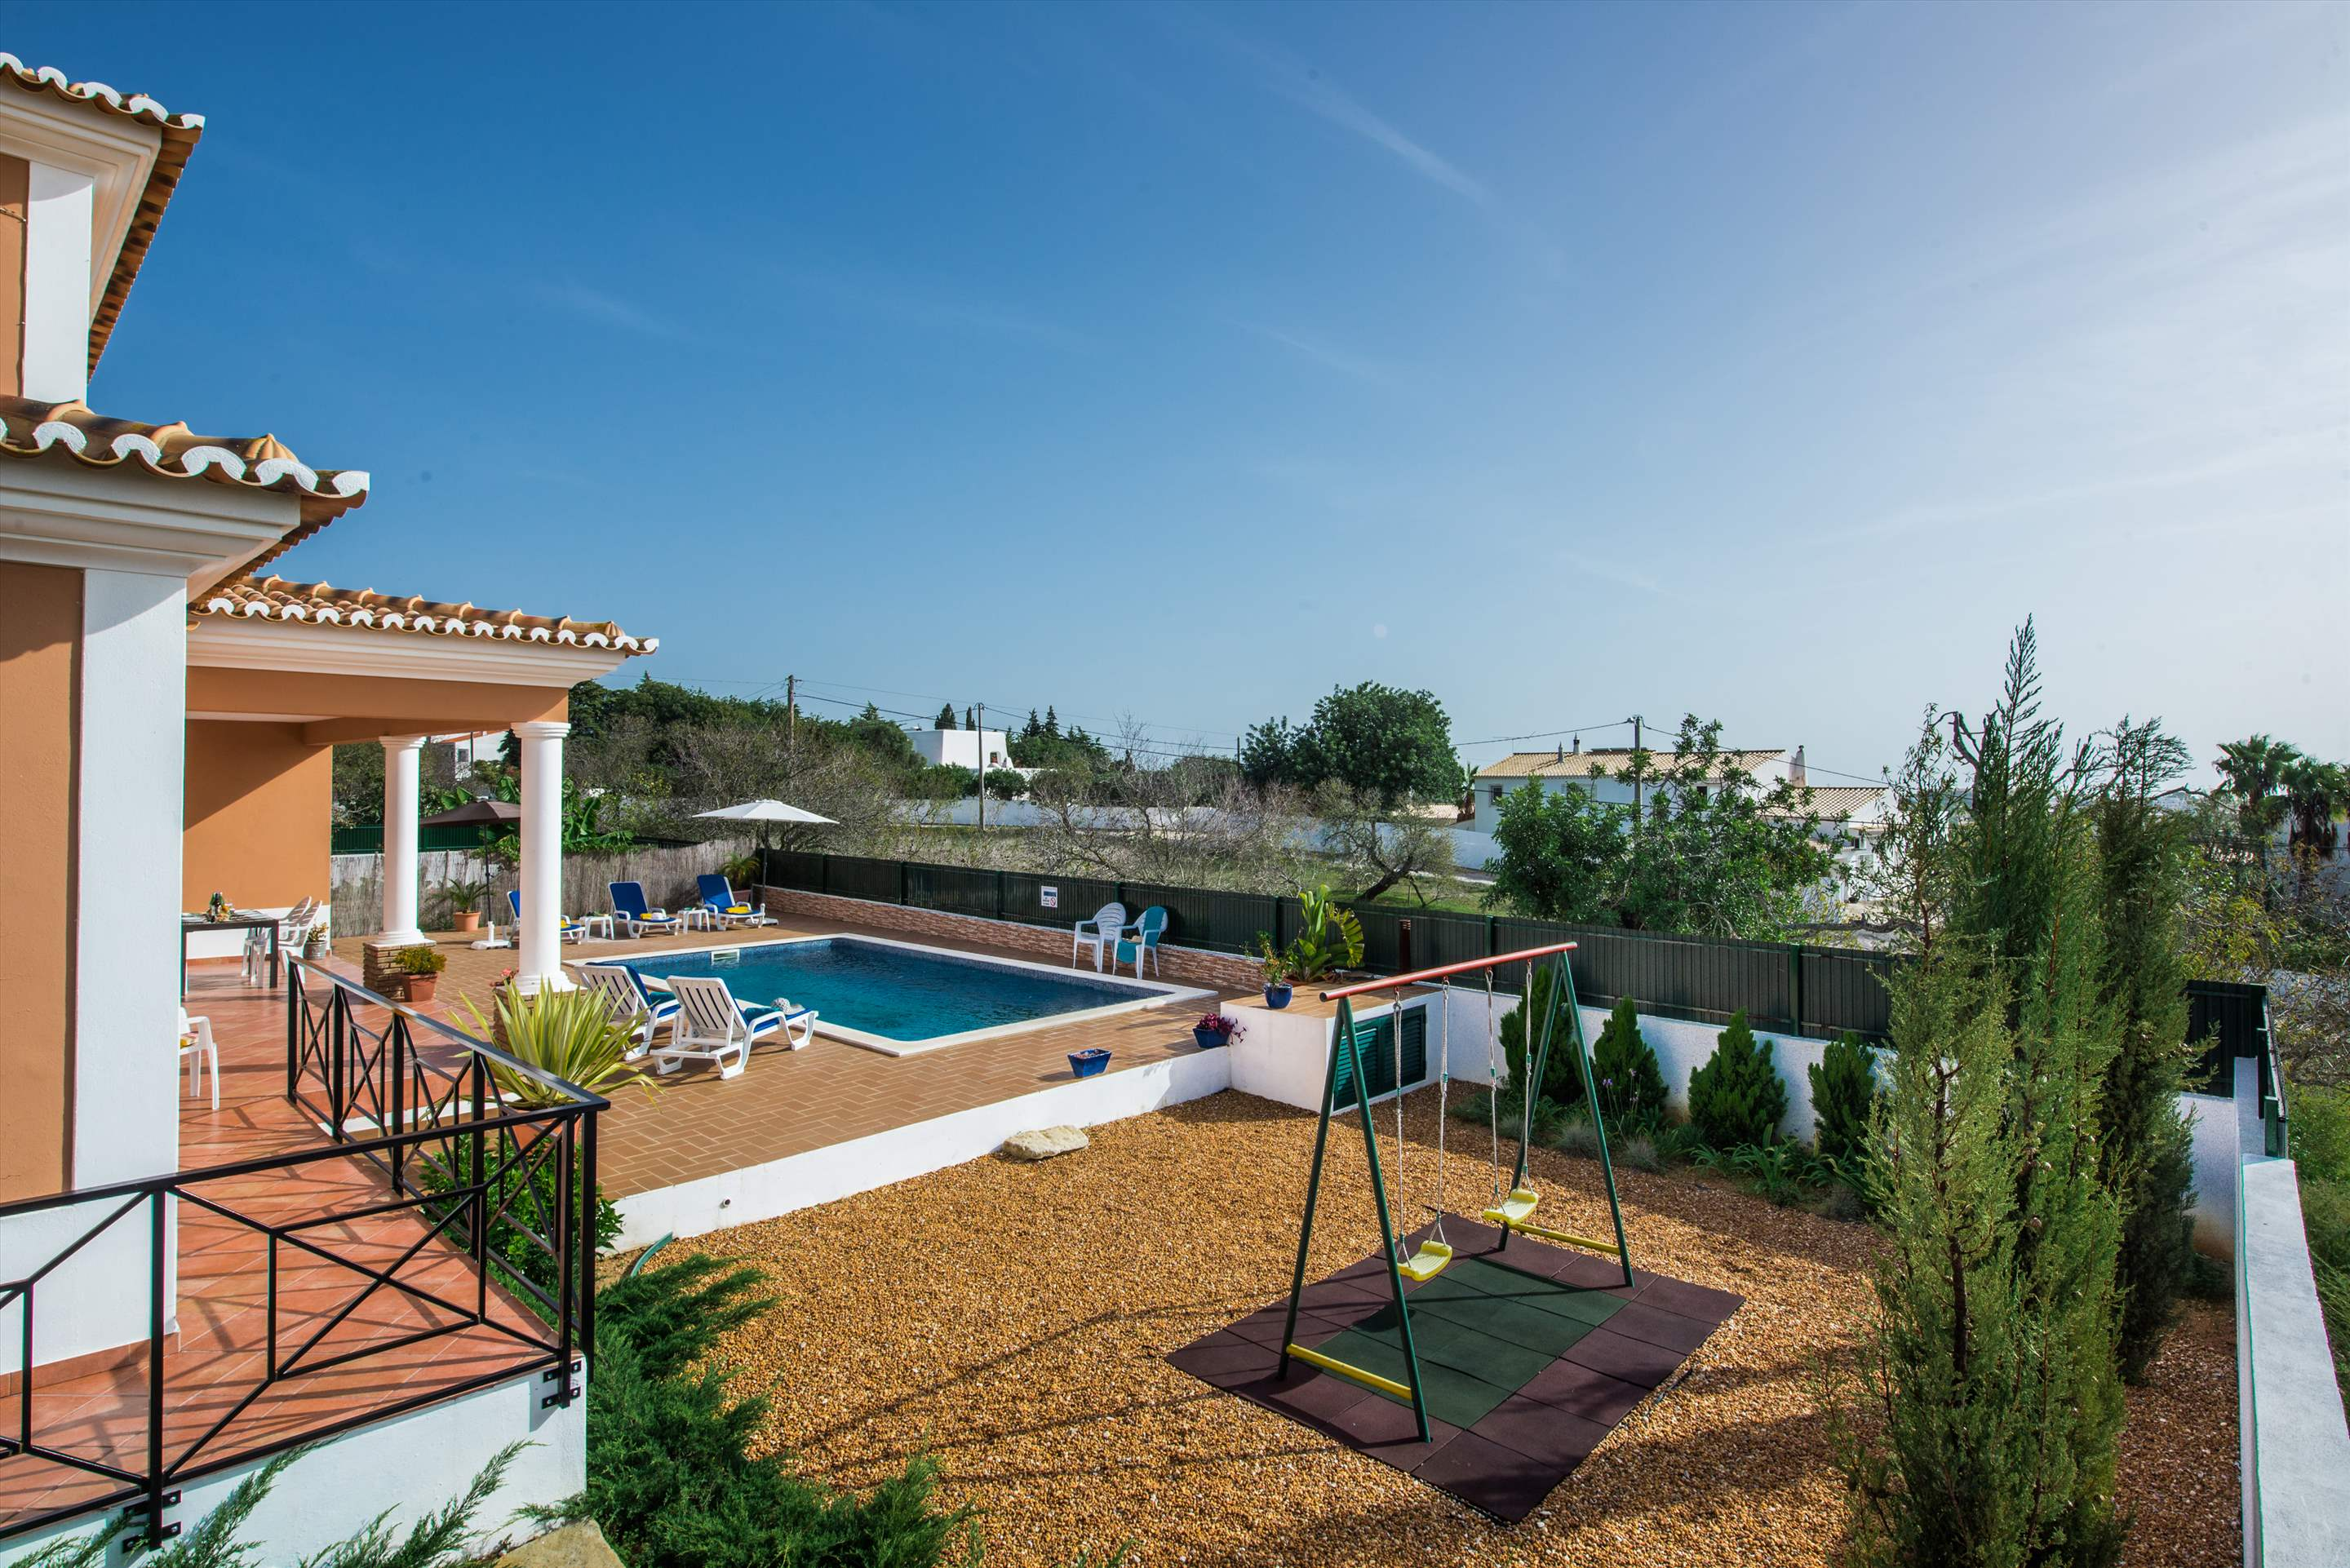 Casa Laura, 3 bedroom villa in Gale, Vale da Parra and Guia, Algarve Photo #3